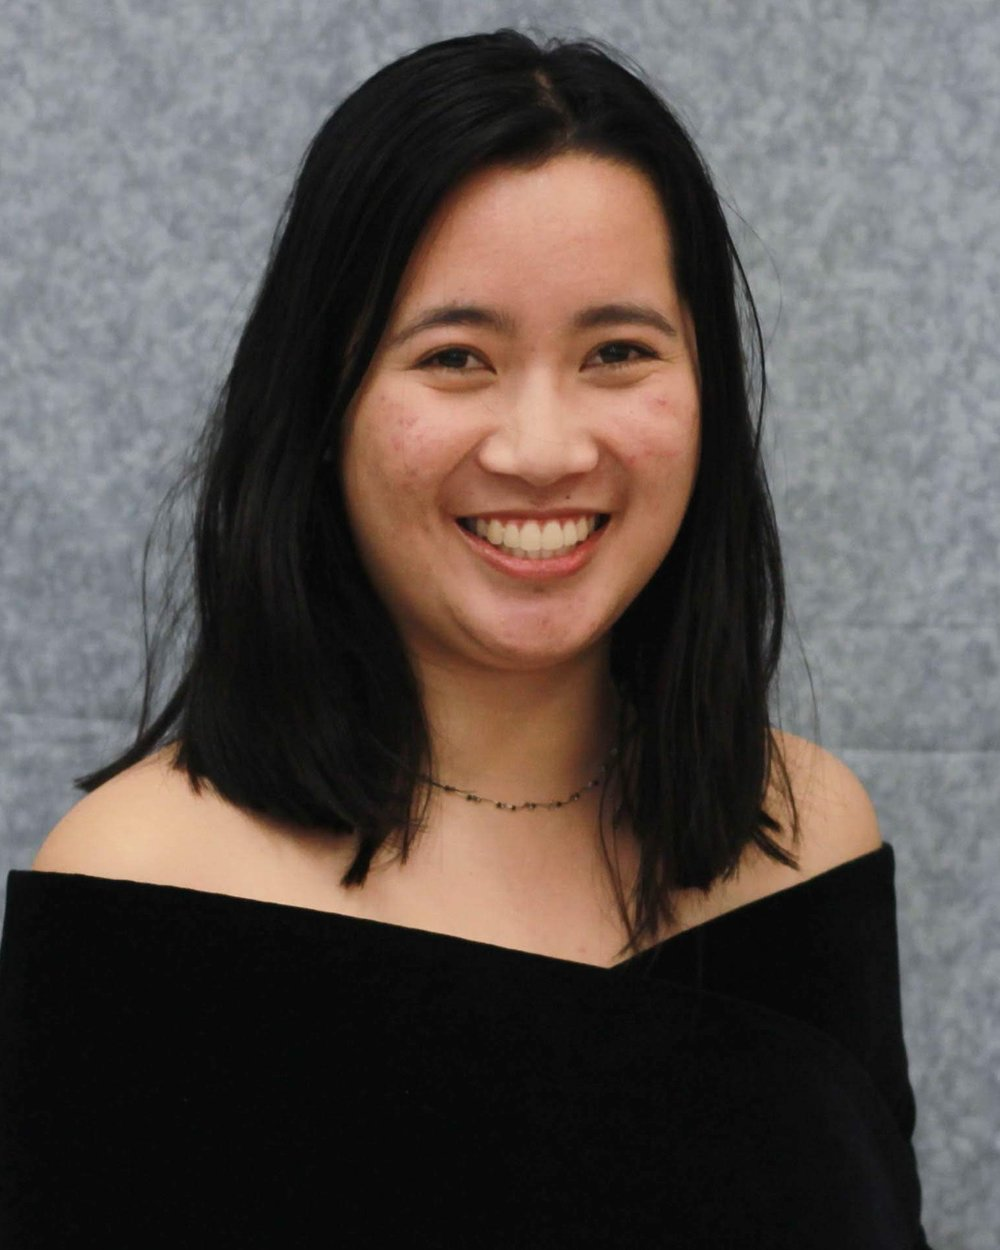 Brianna Fabian - Fundraising Chair and Community Service Chair